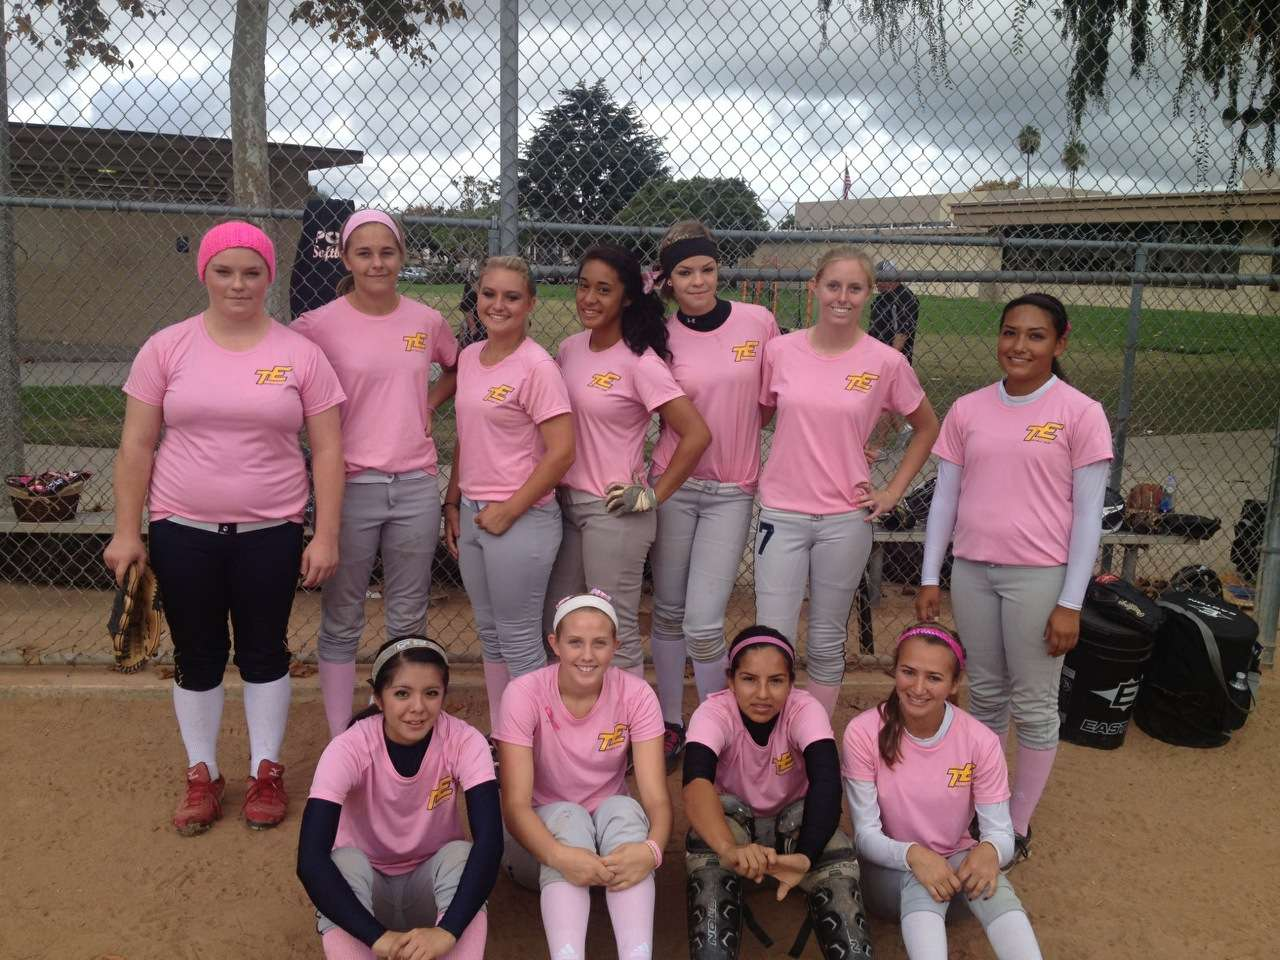 Team Easton Softball